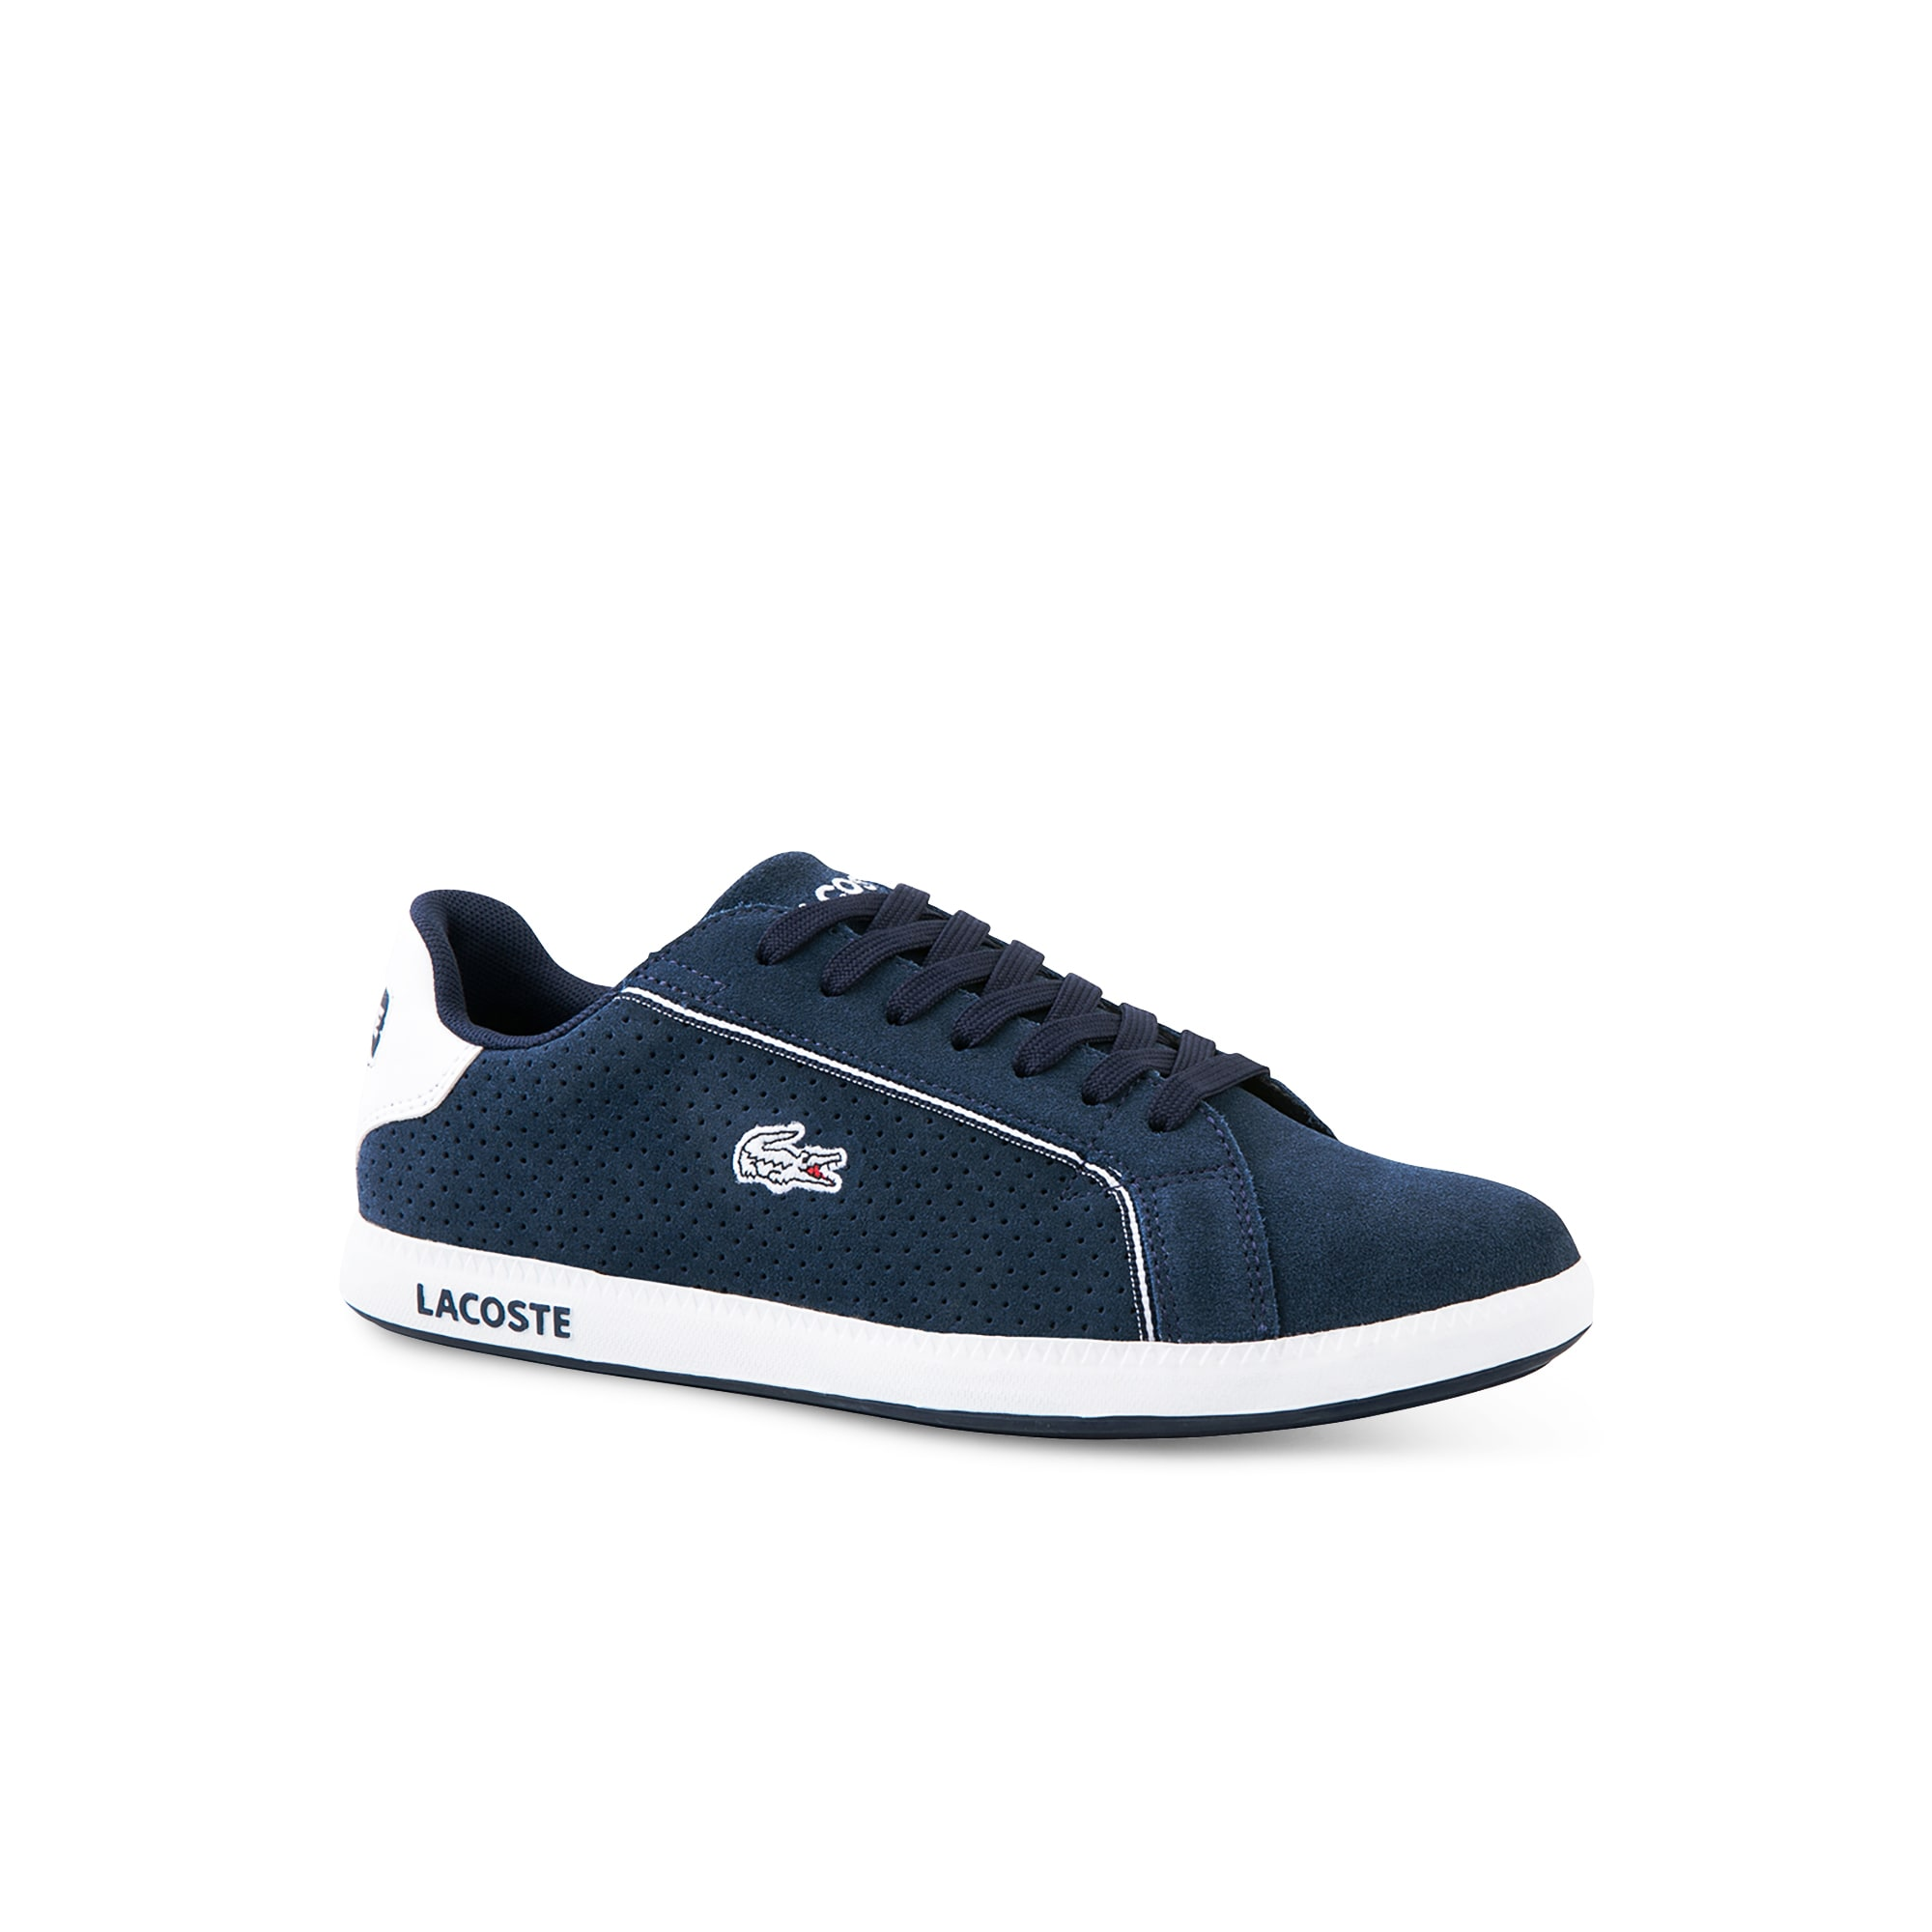 b4acb1633728a7 Women s Graduate Suede Sneakers